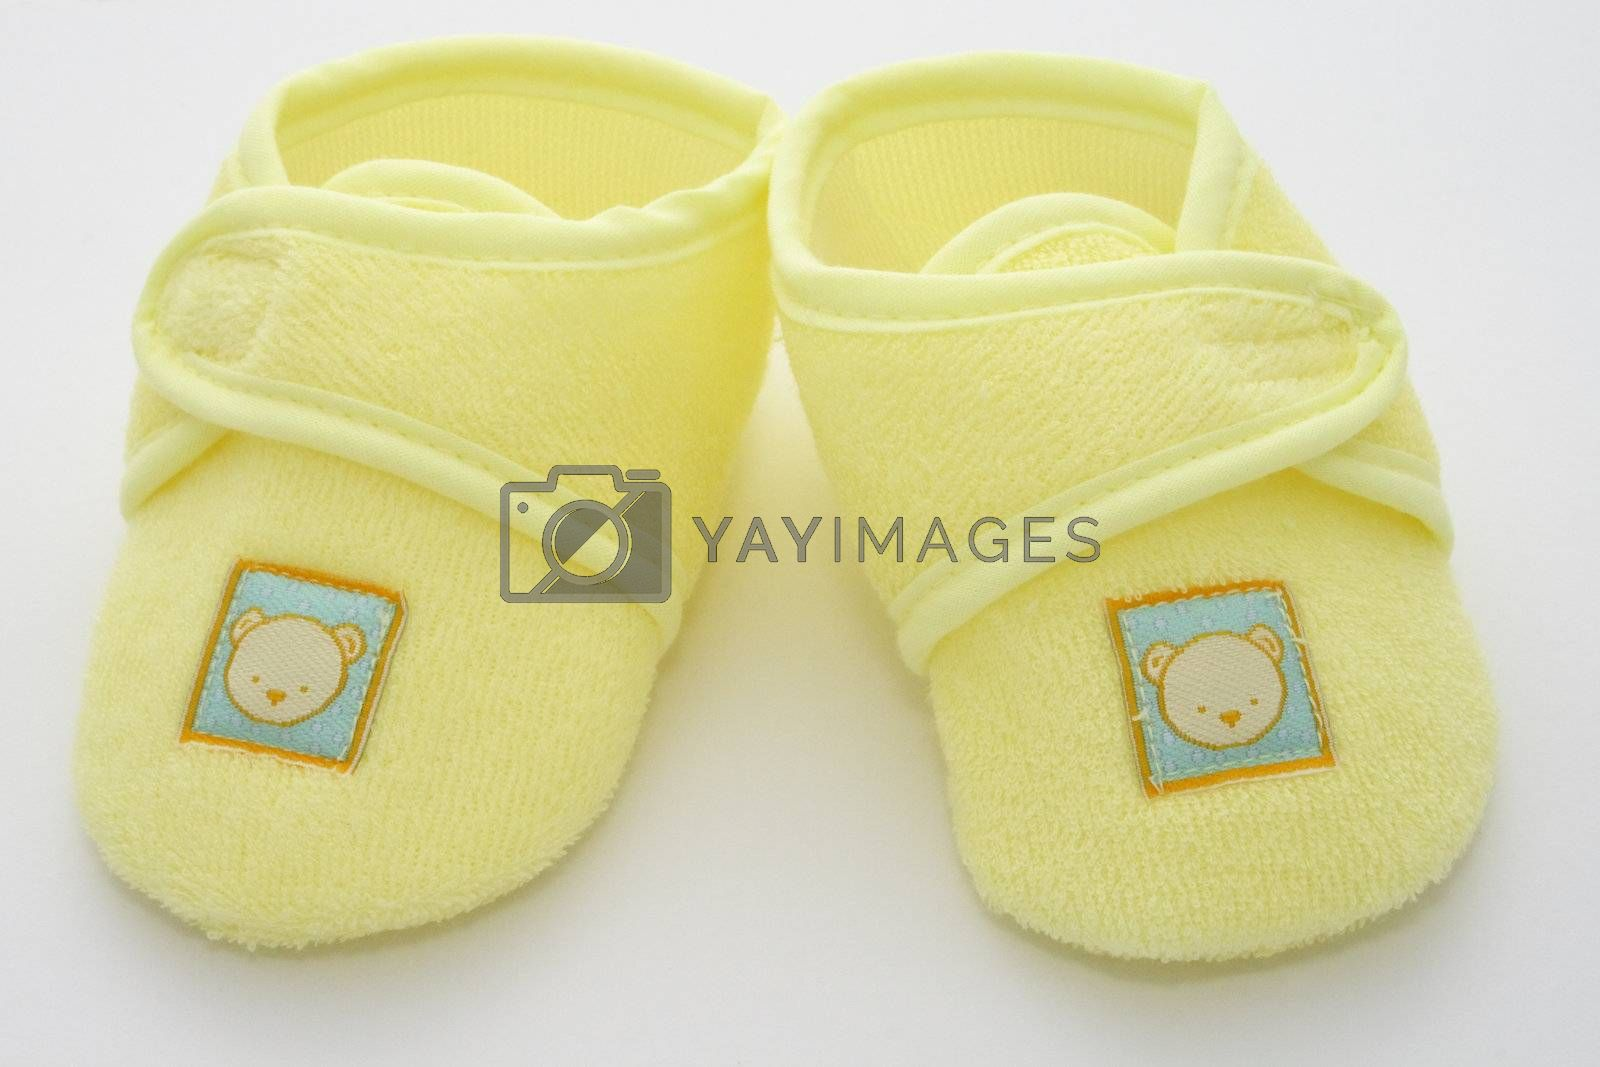 babies first pair of shoes in a yellow towelling material